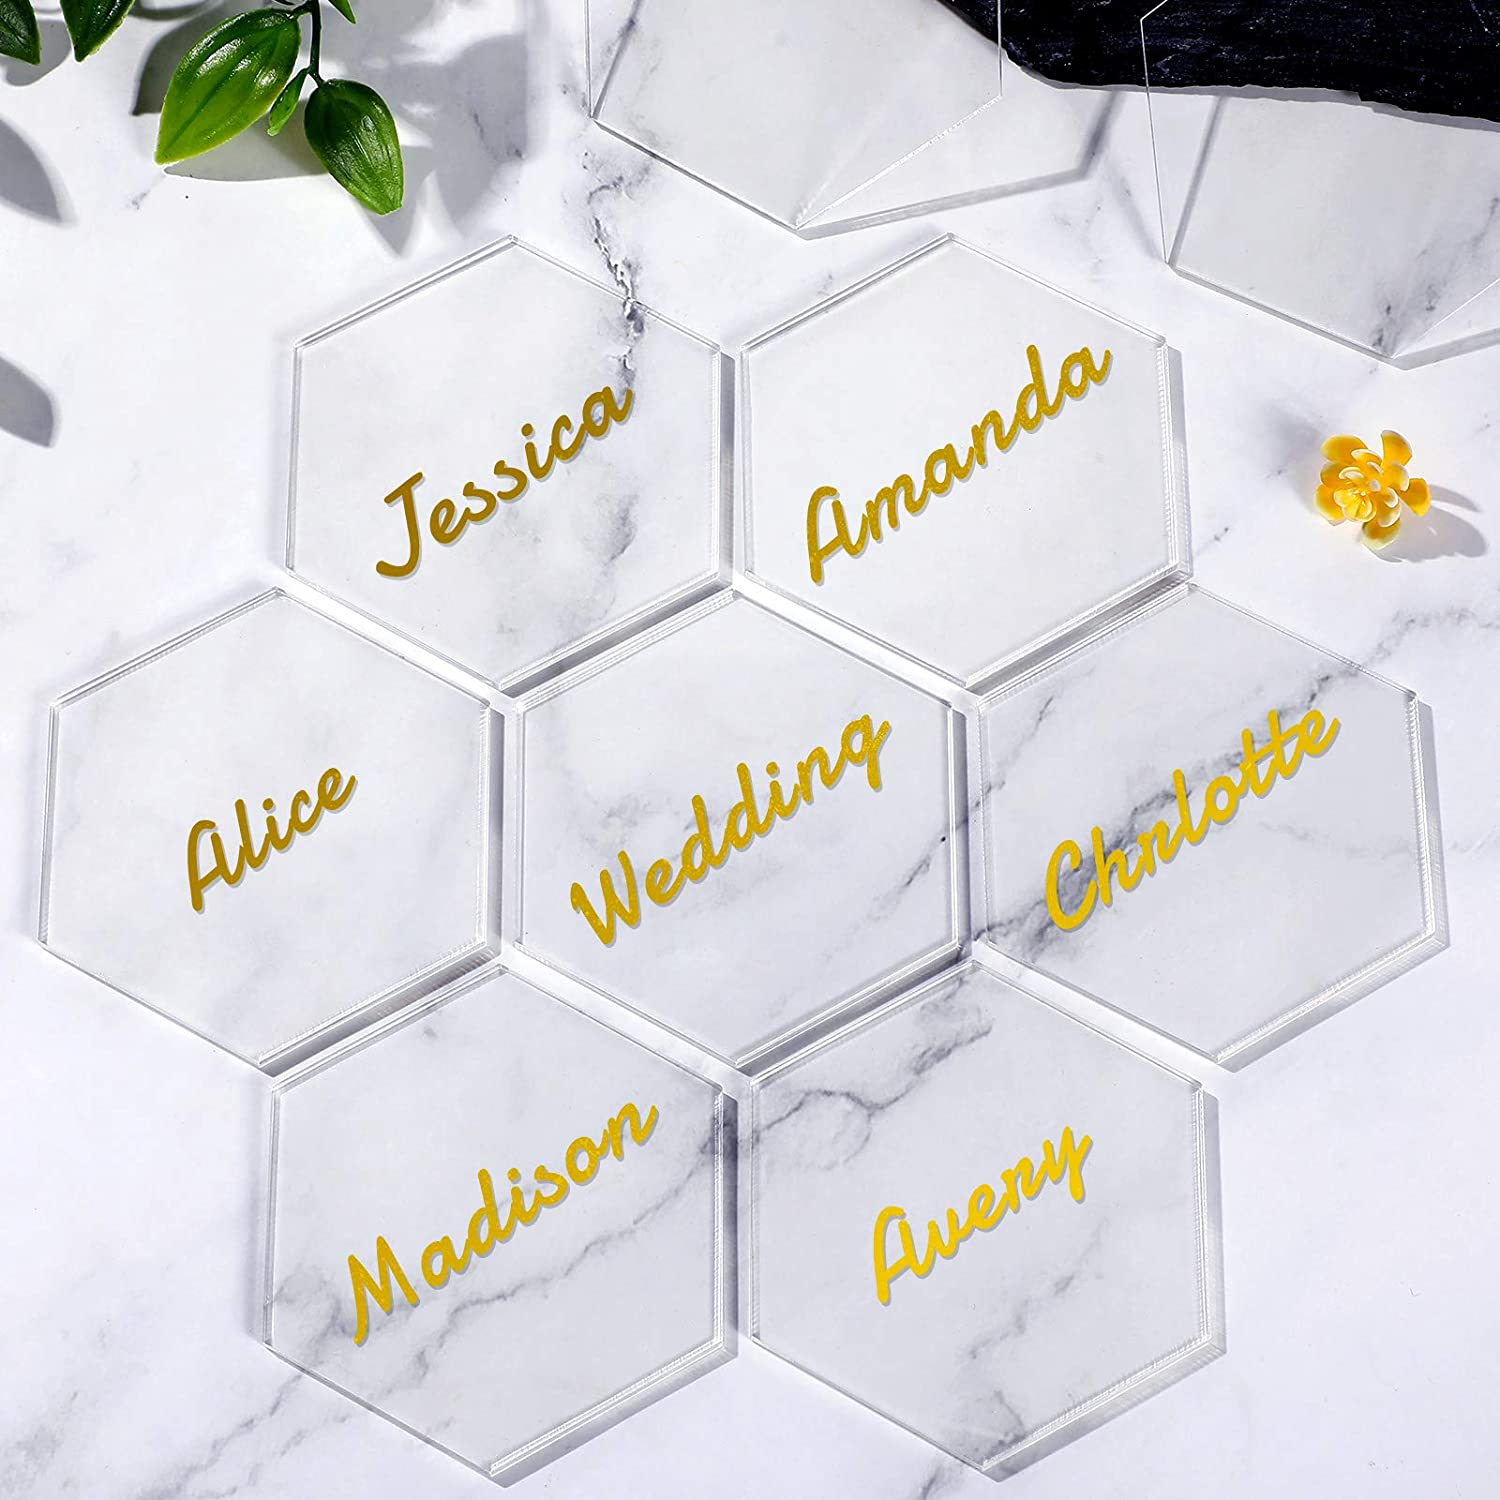 Yookeer 25 Pieces Clear Hexagon Acrylic Place Card Blank Seating Cards Guest Chart Escort Plates Tiles Name Cards for Wedding Birthday Party Banquet Food Sign Decoration